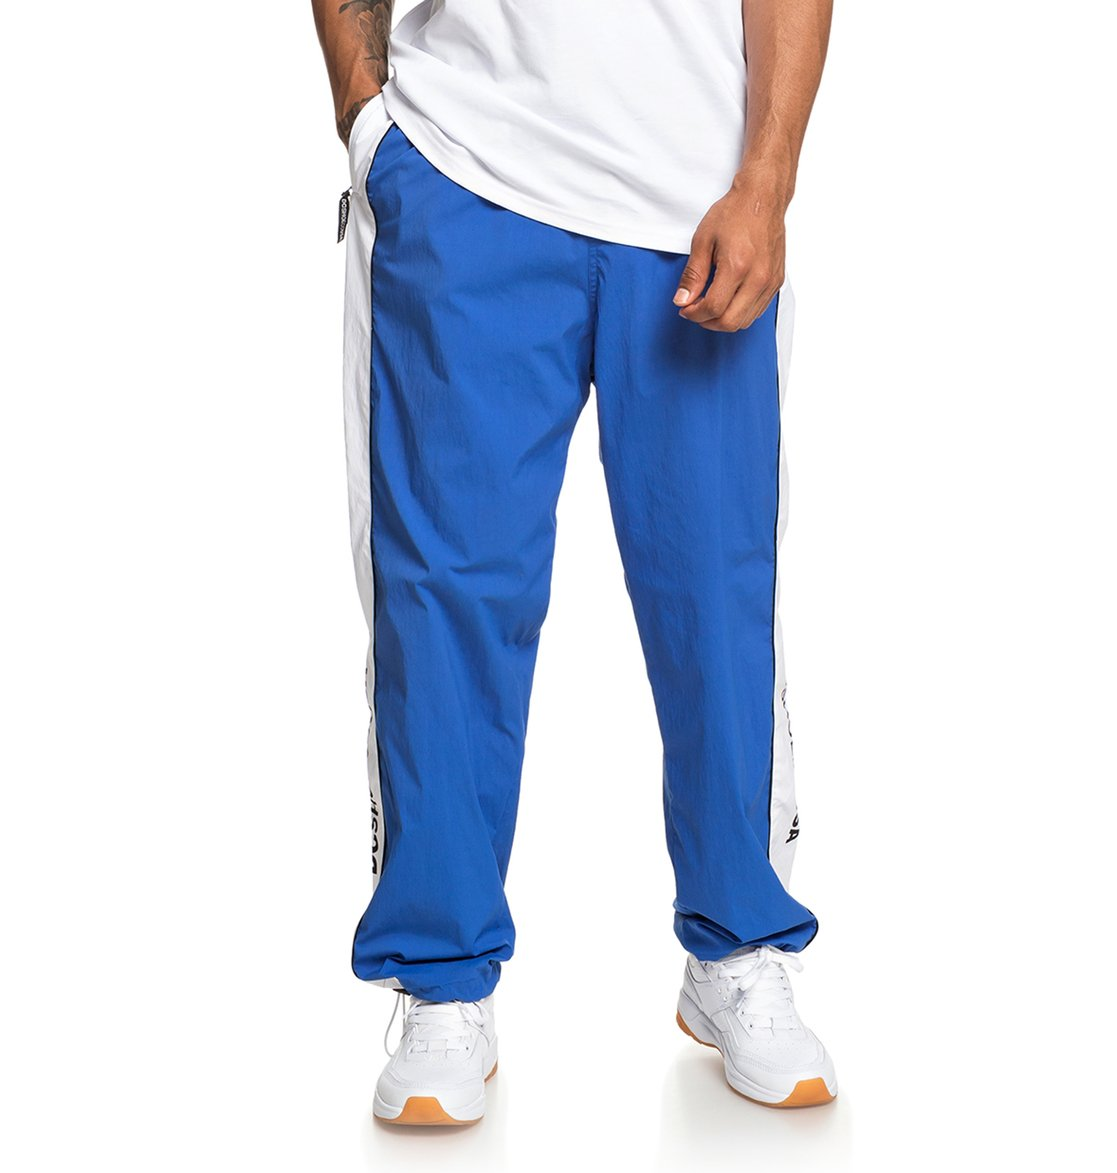 best supplier online here 2019 authentic Details about DC Shoes™ Welwyn - Tracksuit Bottoms for Men - Tracksuit  Bottoms - Men